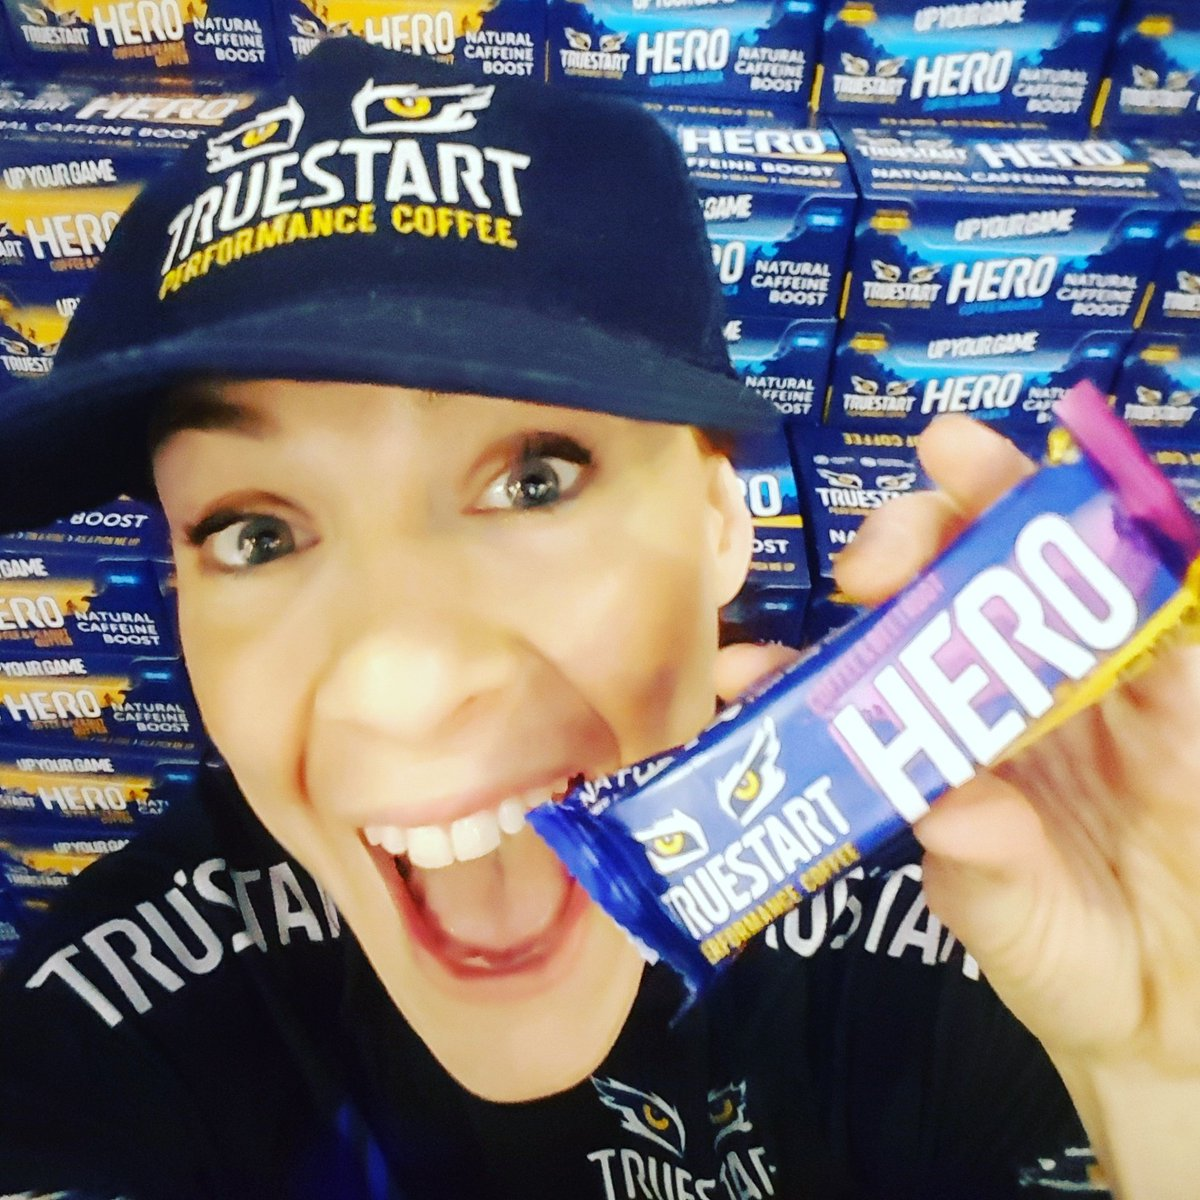 Hero bars all round!! @TriShowLDN @londonbikeshow #coffee #caffeine #cycling #triathlon #TEAMTRUESTART #UPYOURGAME https://t.co/ctMgPbtr8v